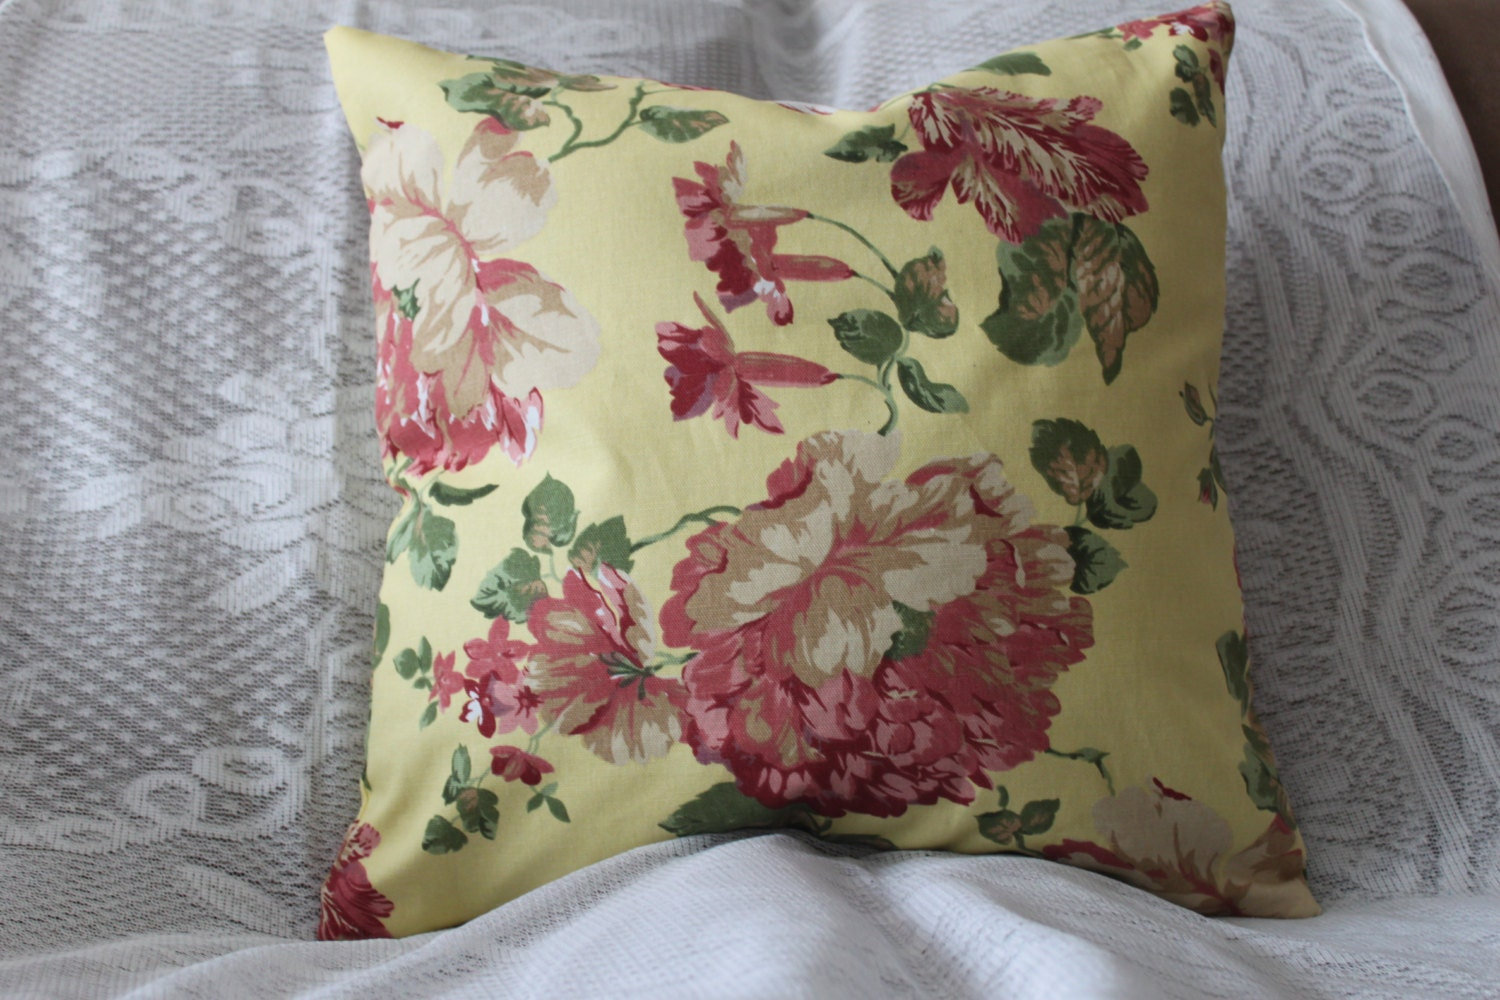 Decorative Pillow Covers With Zippers : Decorative Pillow Cover Zipper Closure Throw by SewHomeDecor